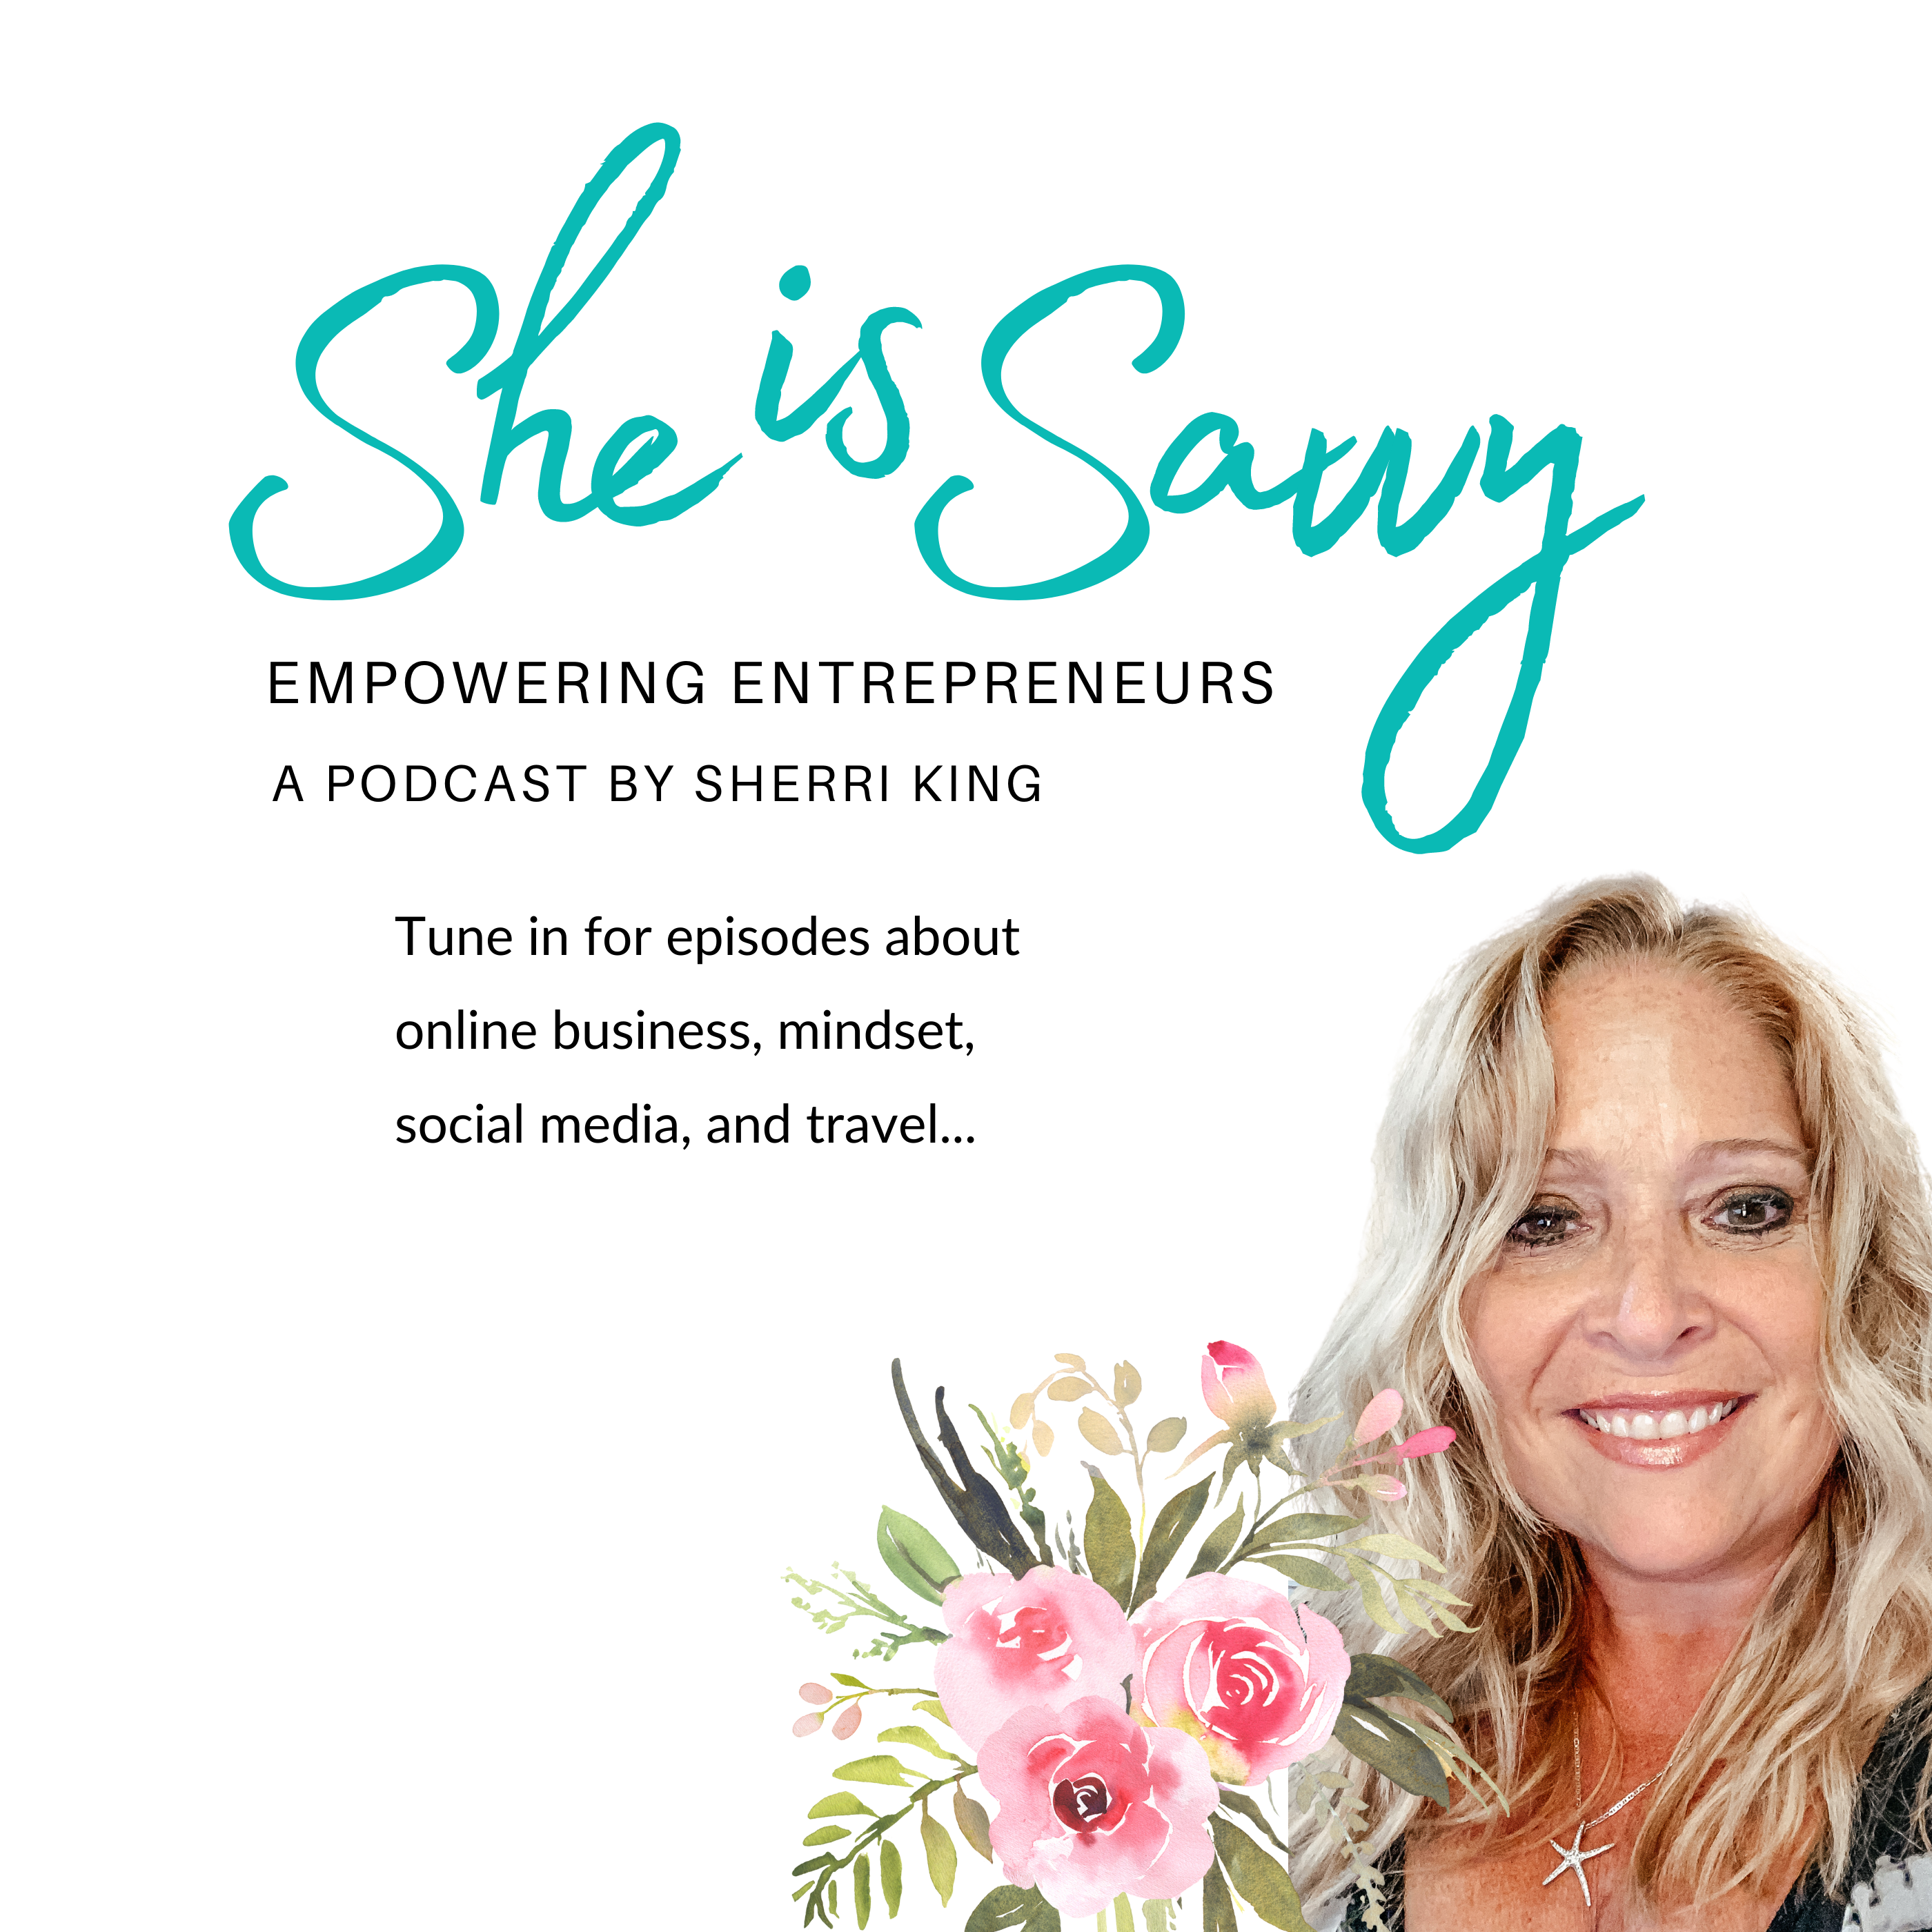 She is Savvy Podcast cover